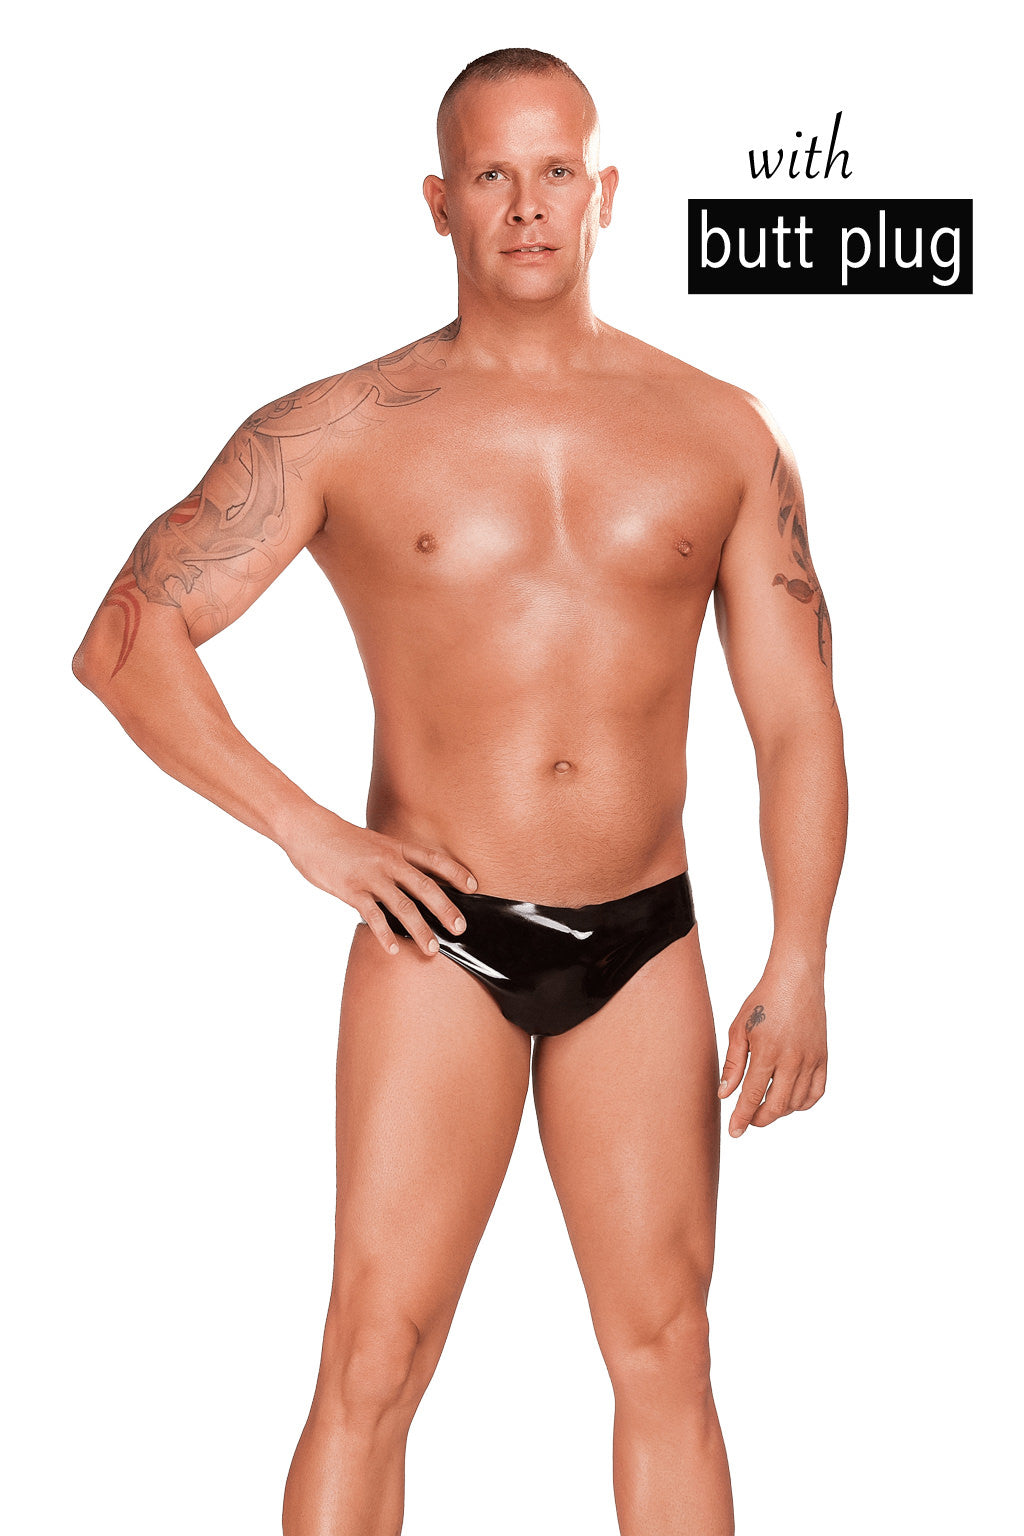 A man wearing a pair of latex briefs with a butt plug.